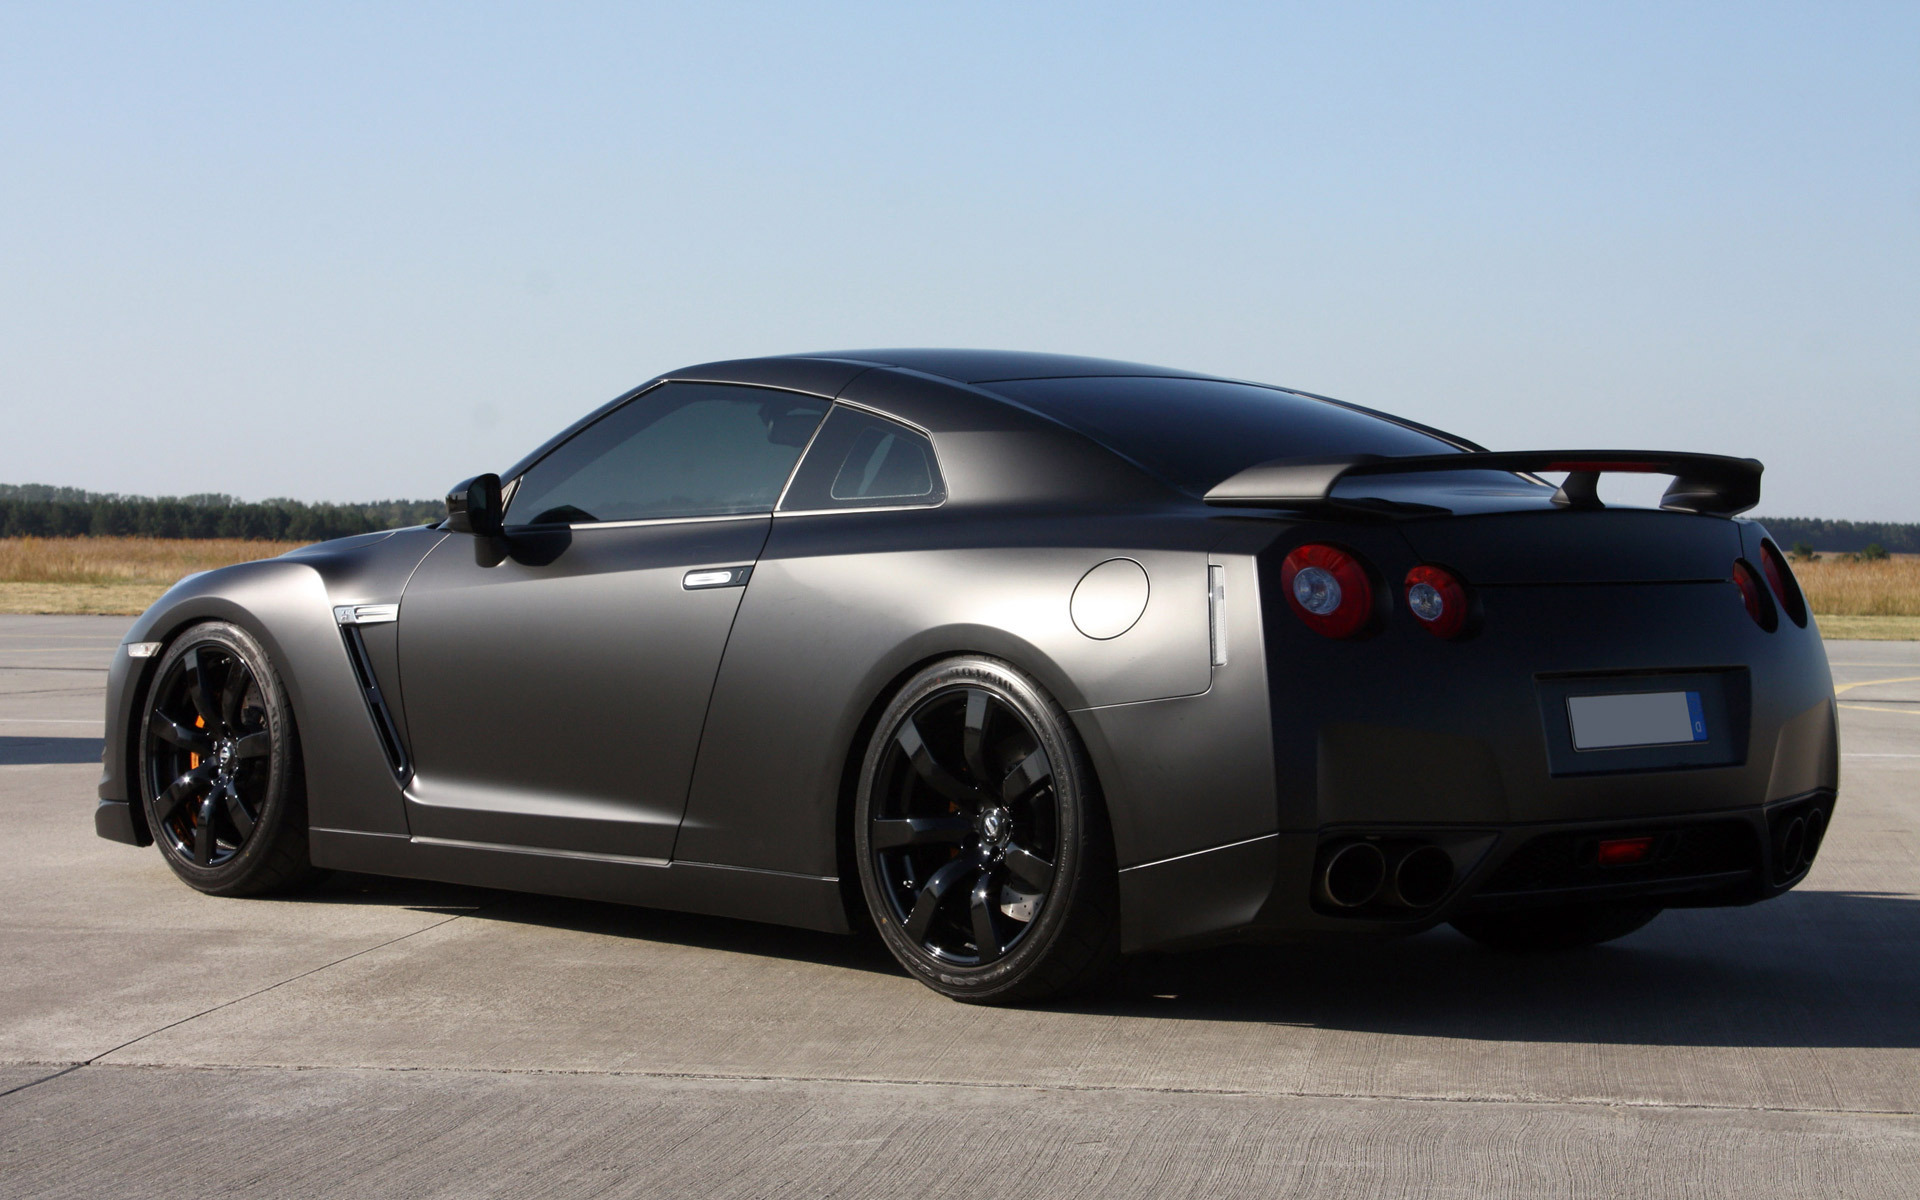 coolest gtr wallpapers - photo #15